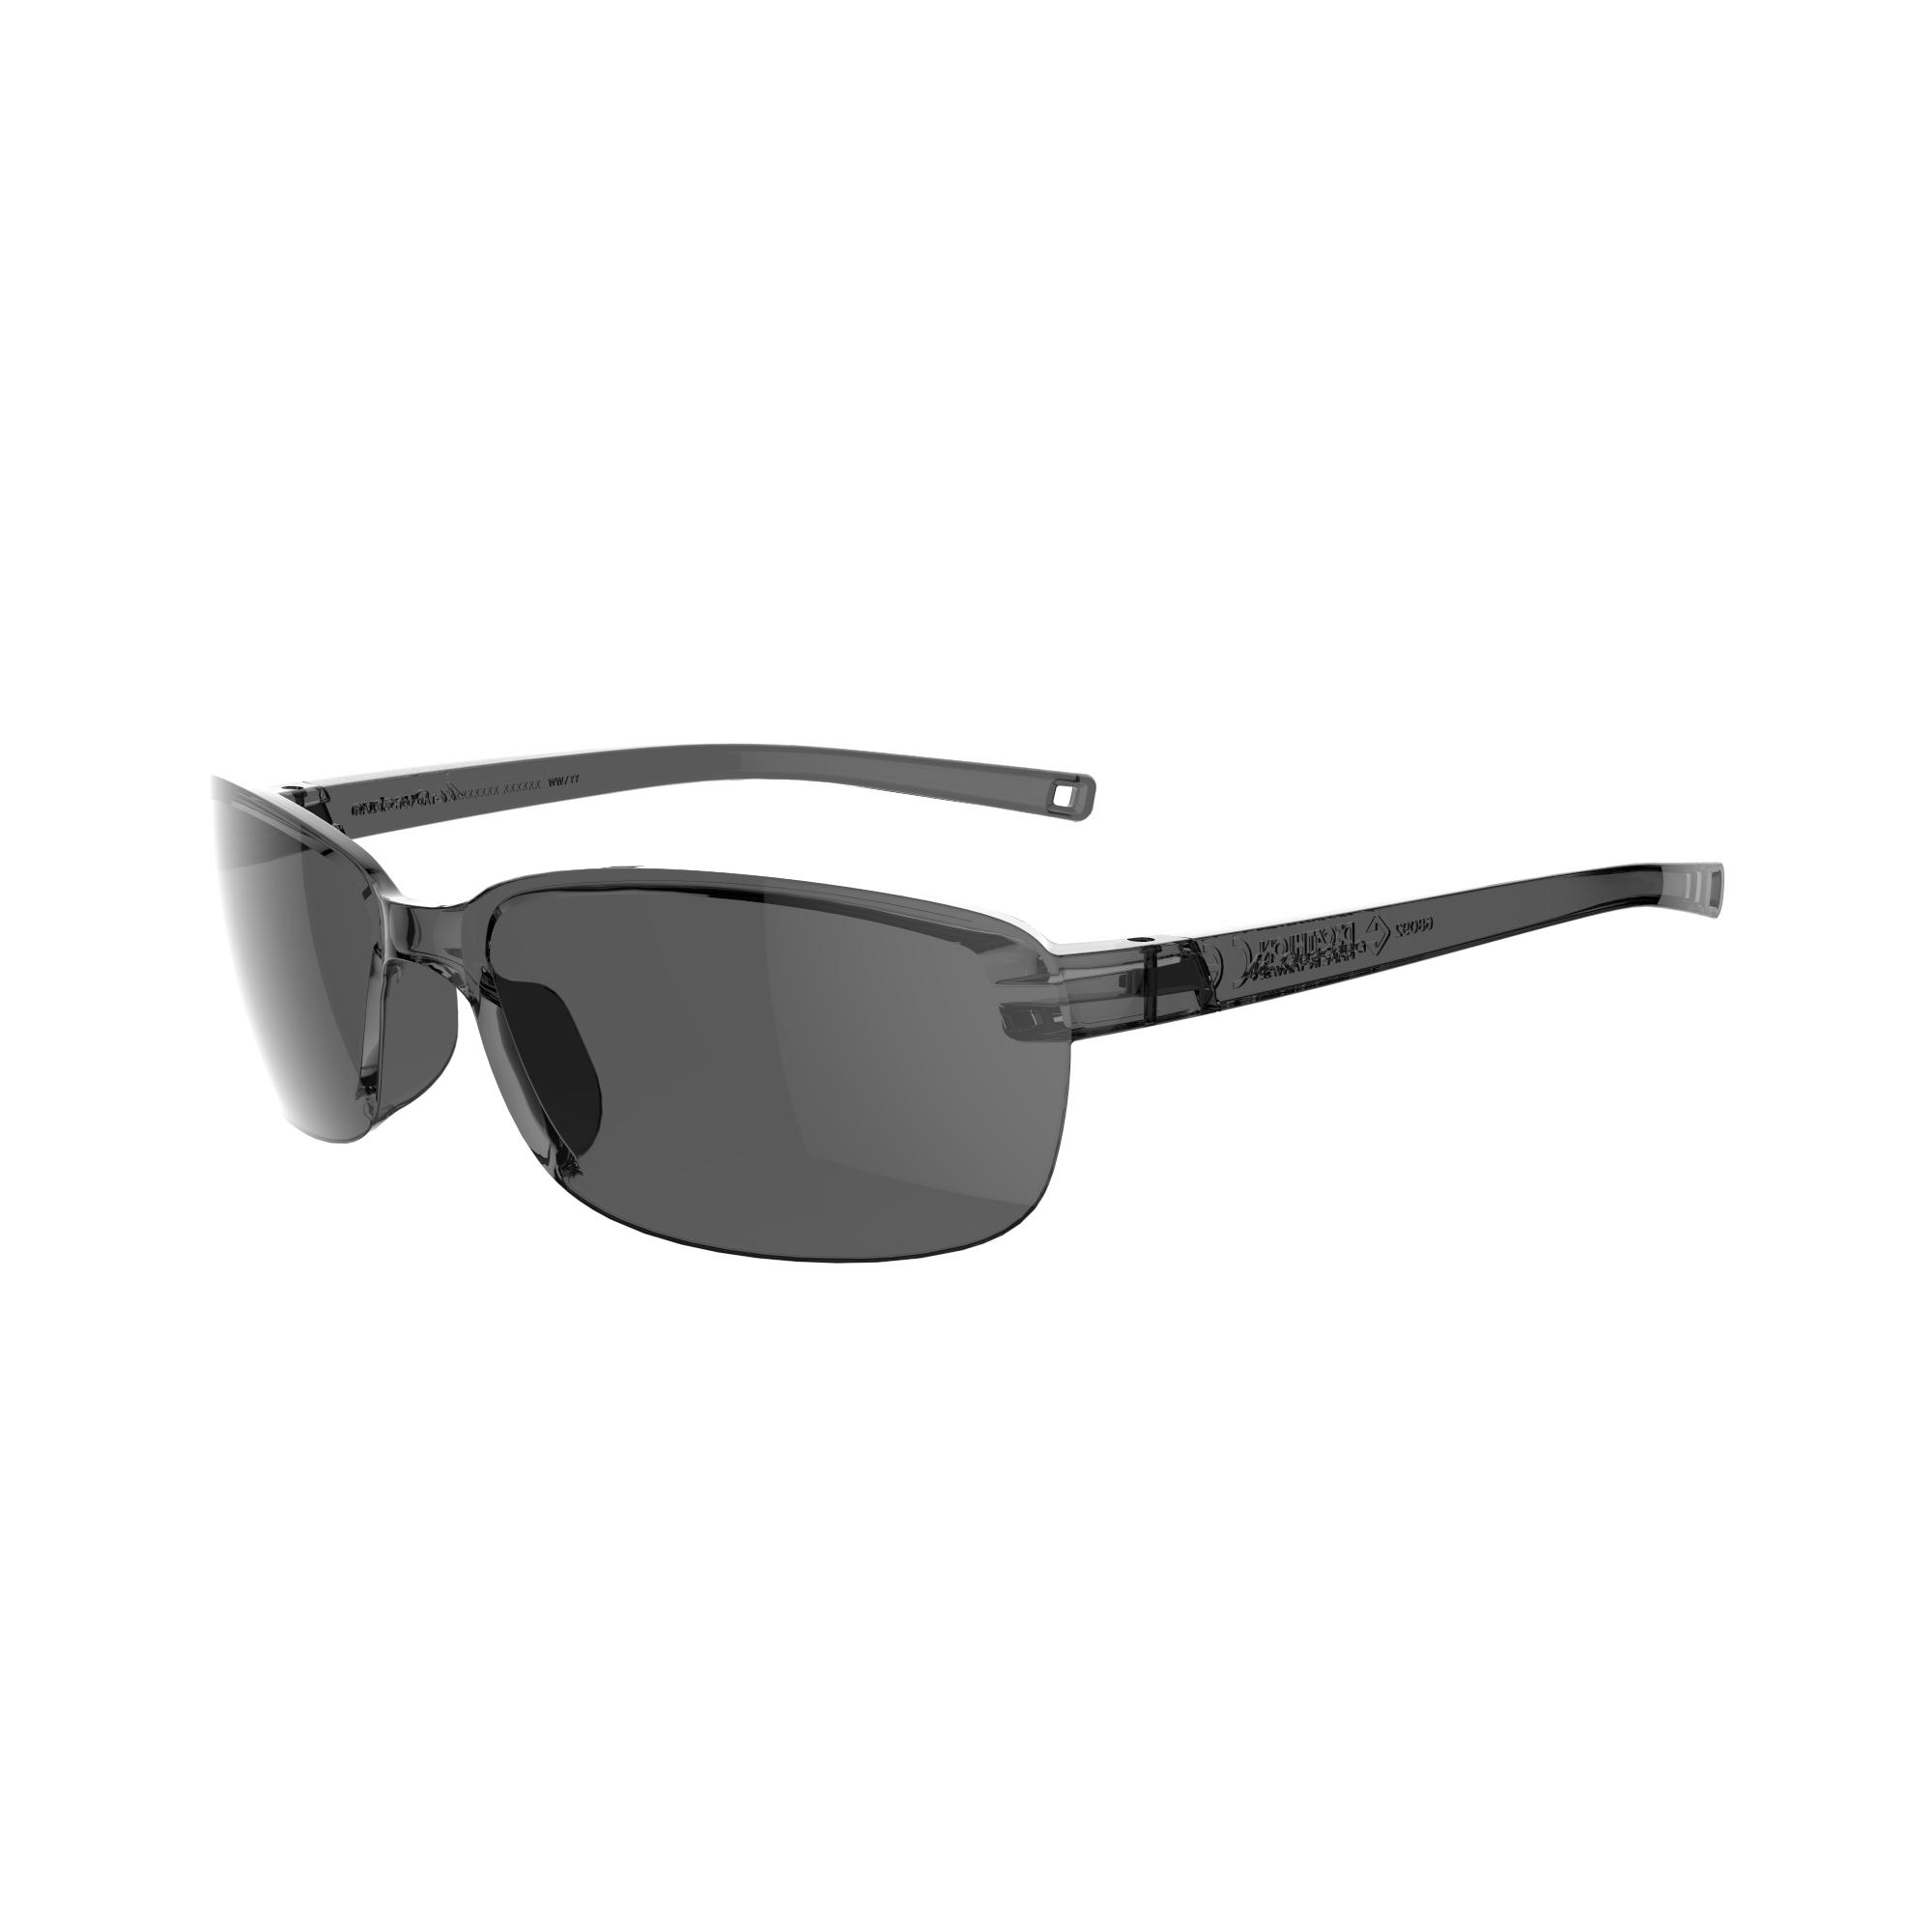 MH 100 Category 3 Polarising Sunglasses - Black